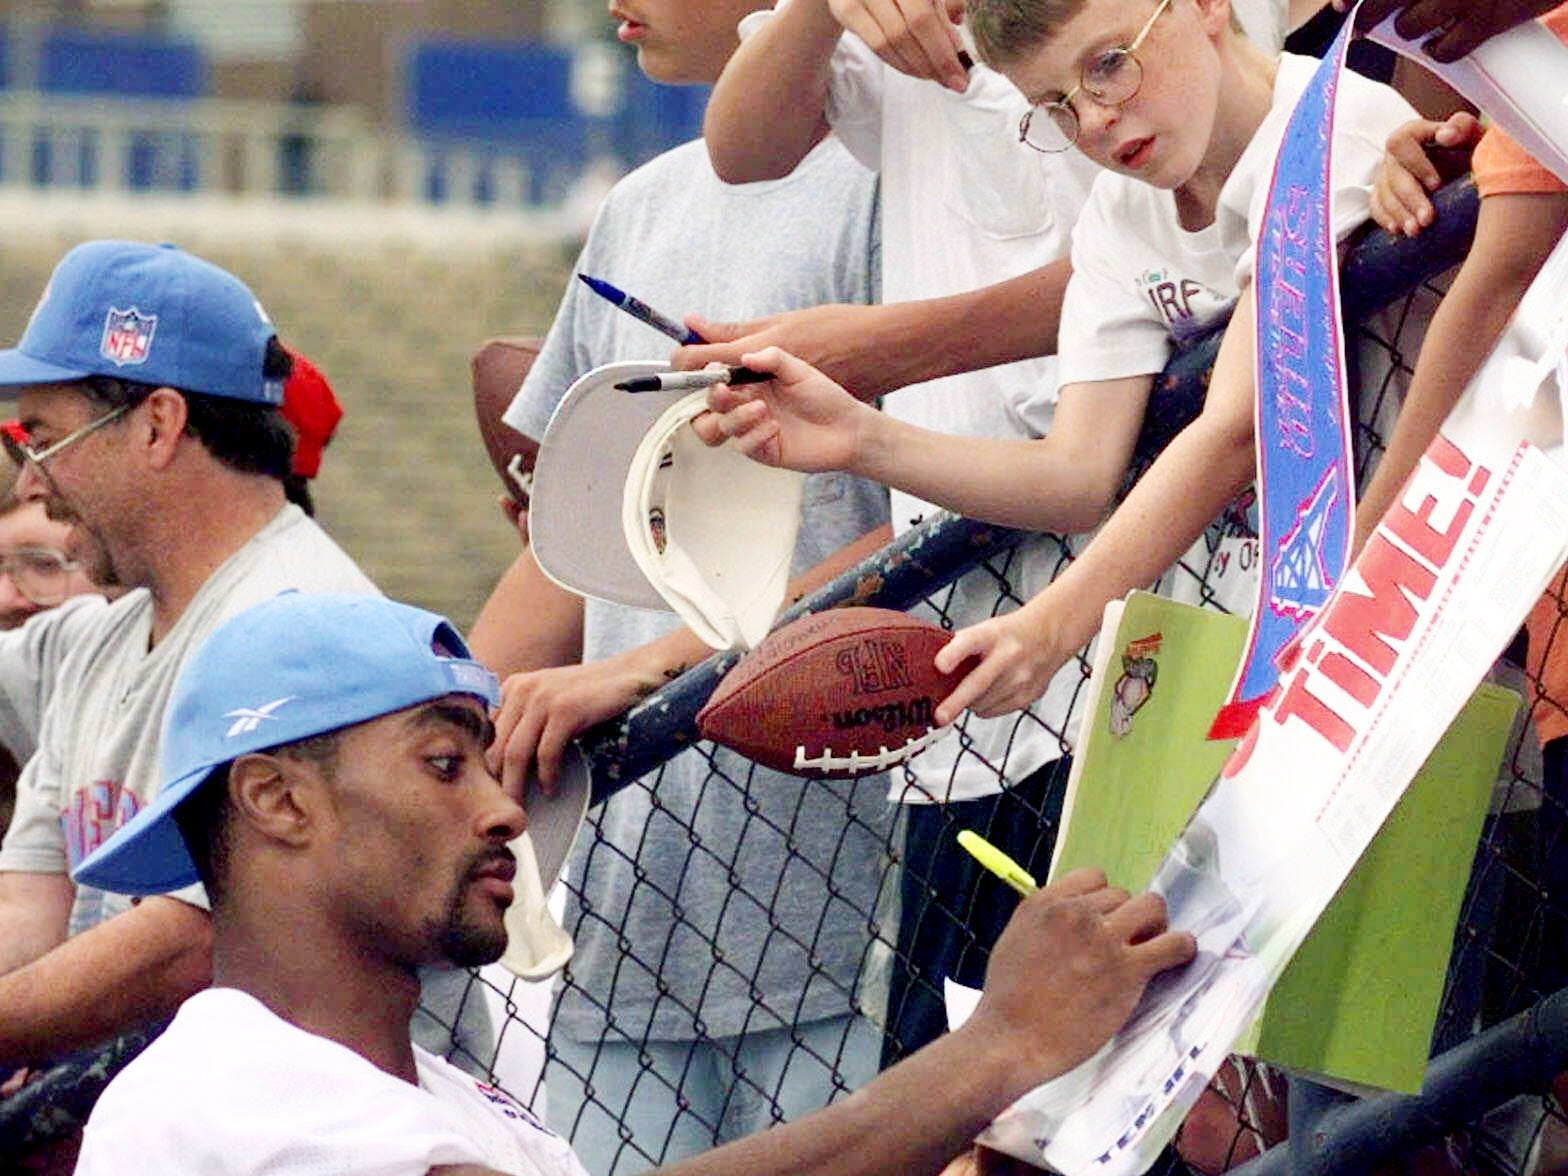 Tennessee Oilers wide receiver Yancey Thigpen, left, signs autographs for fans after practice Aug. 12, 1998 in Nashville.